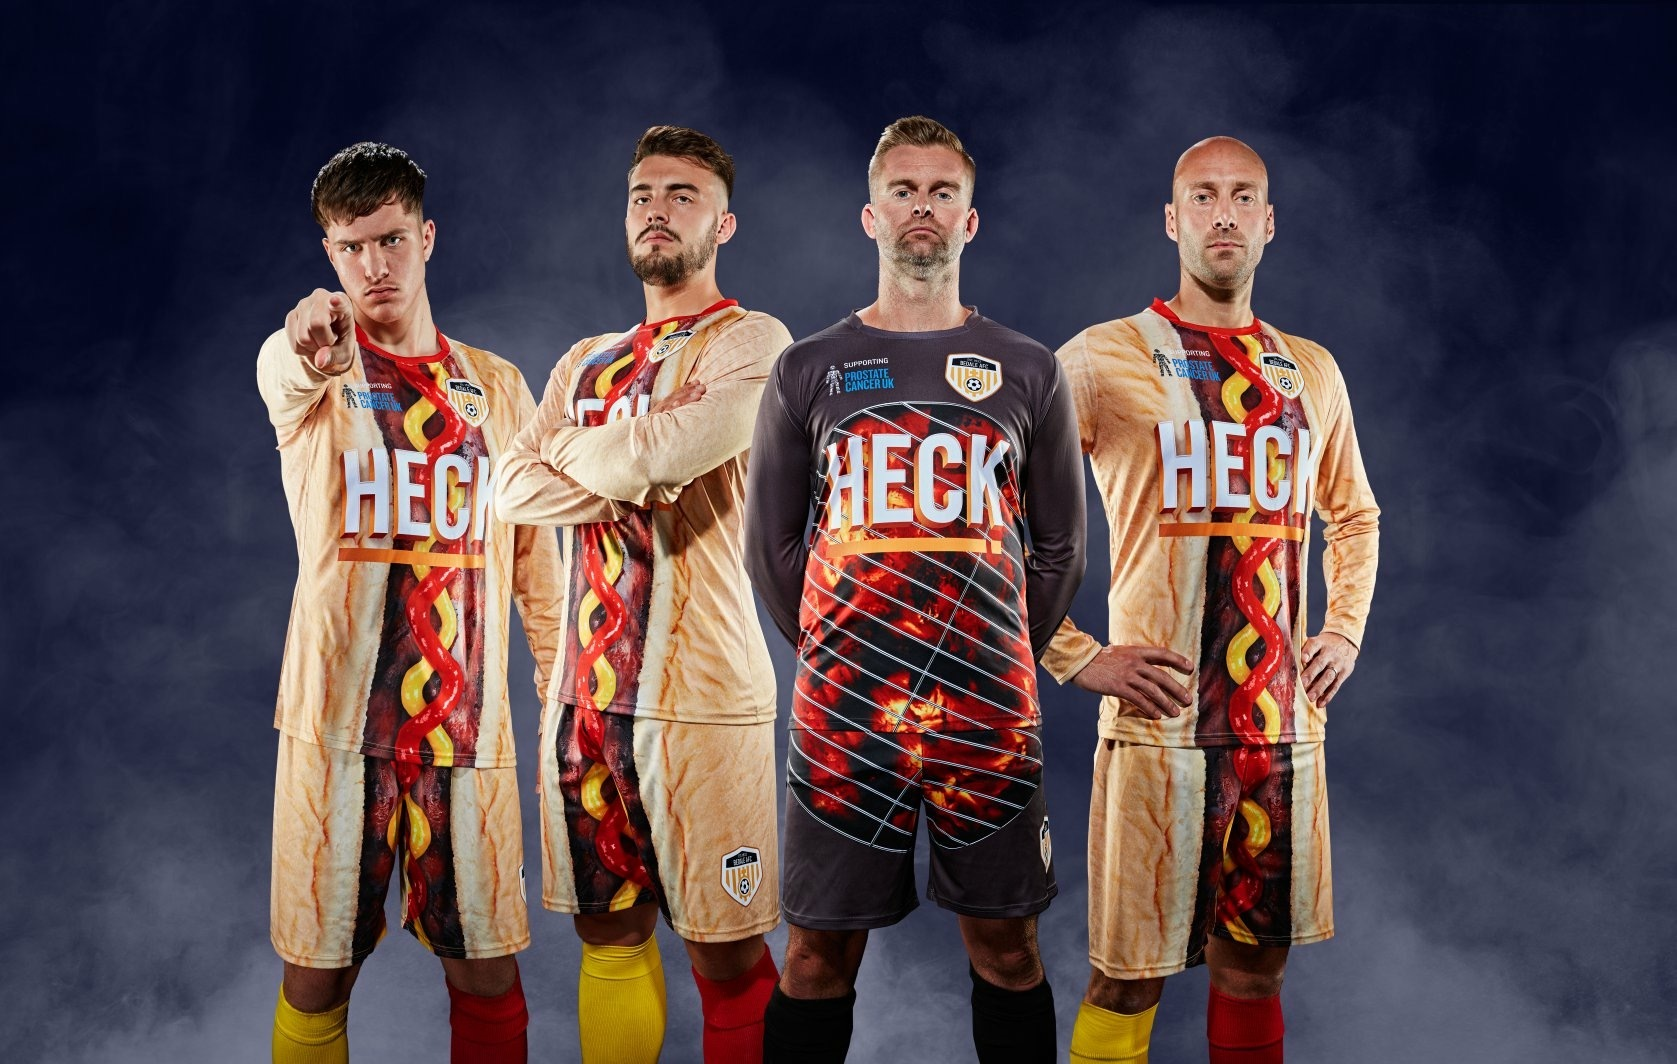 By Heck they're awful! The fundraising kits worn by Bedale AFC